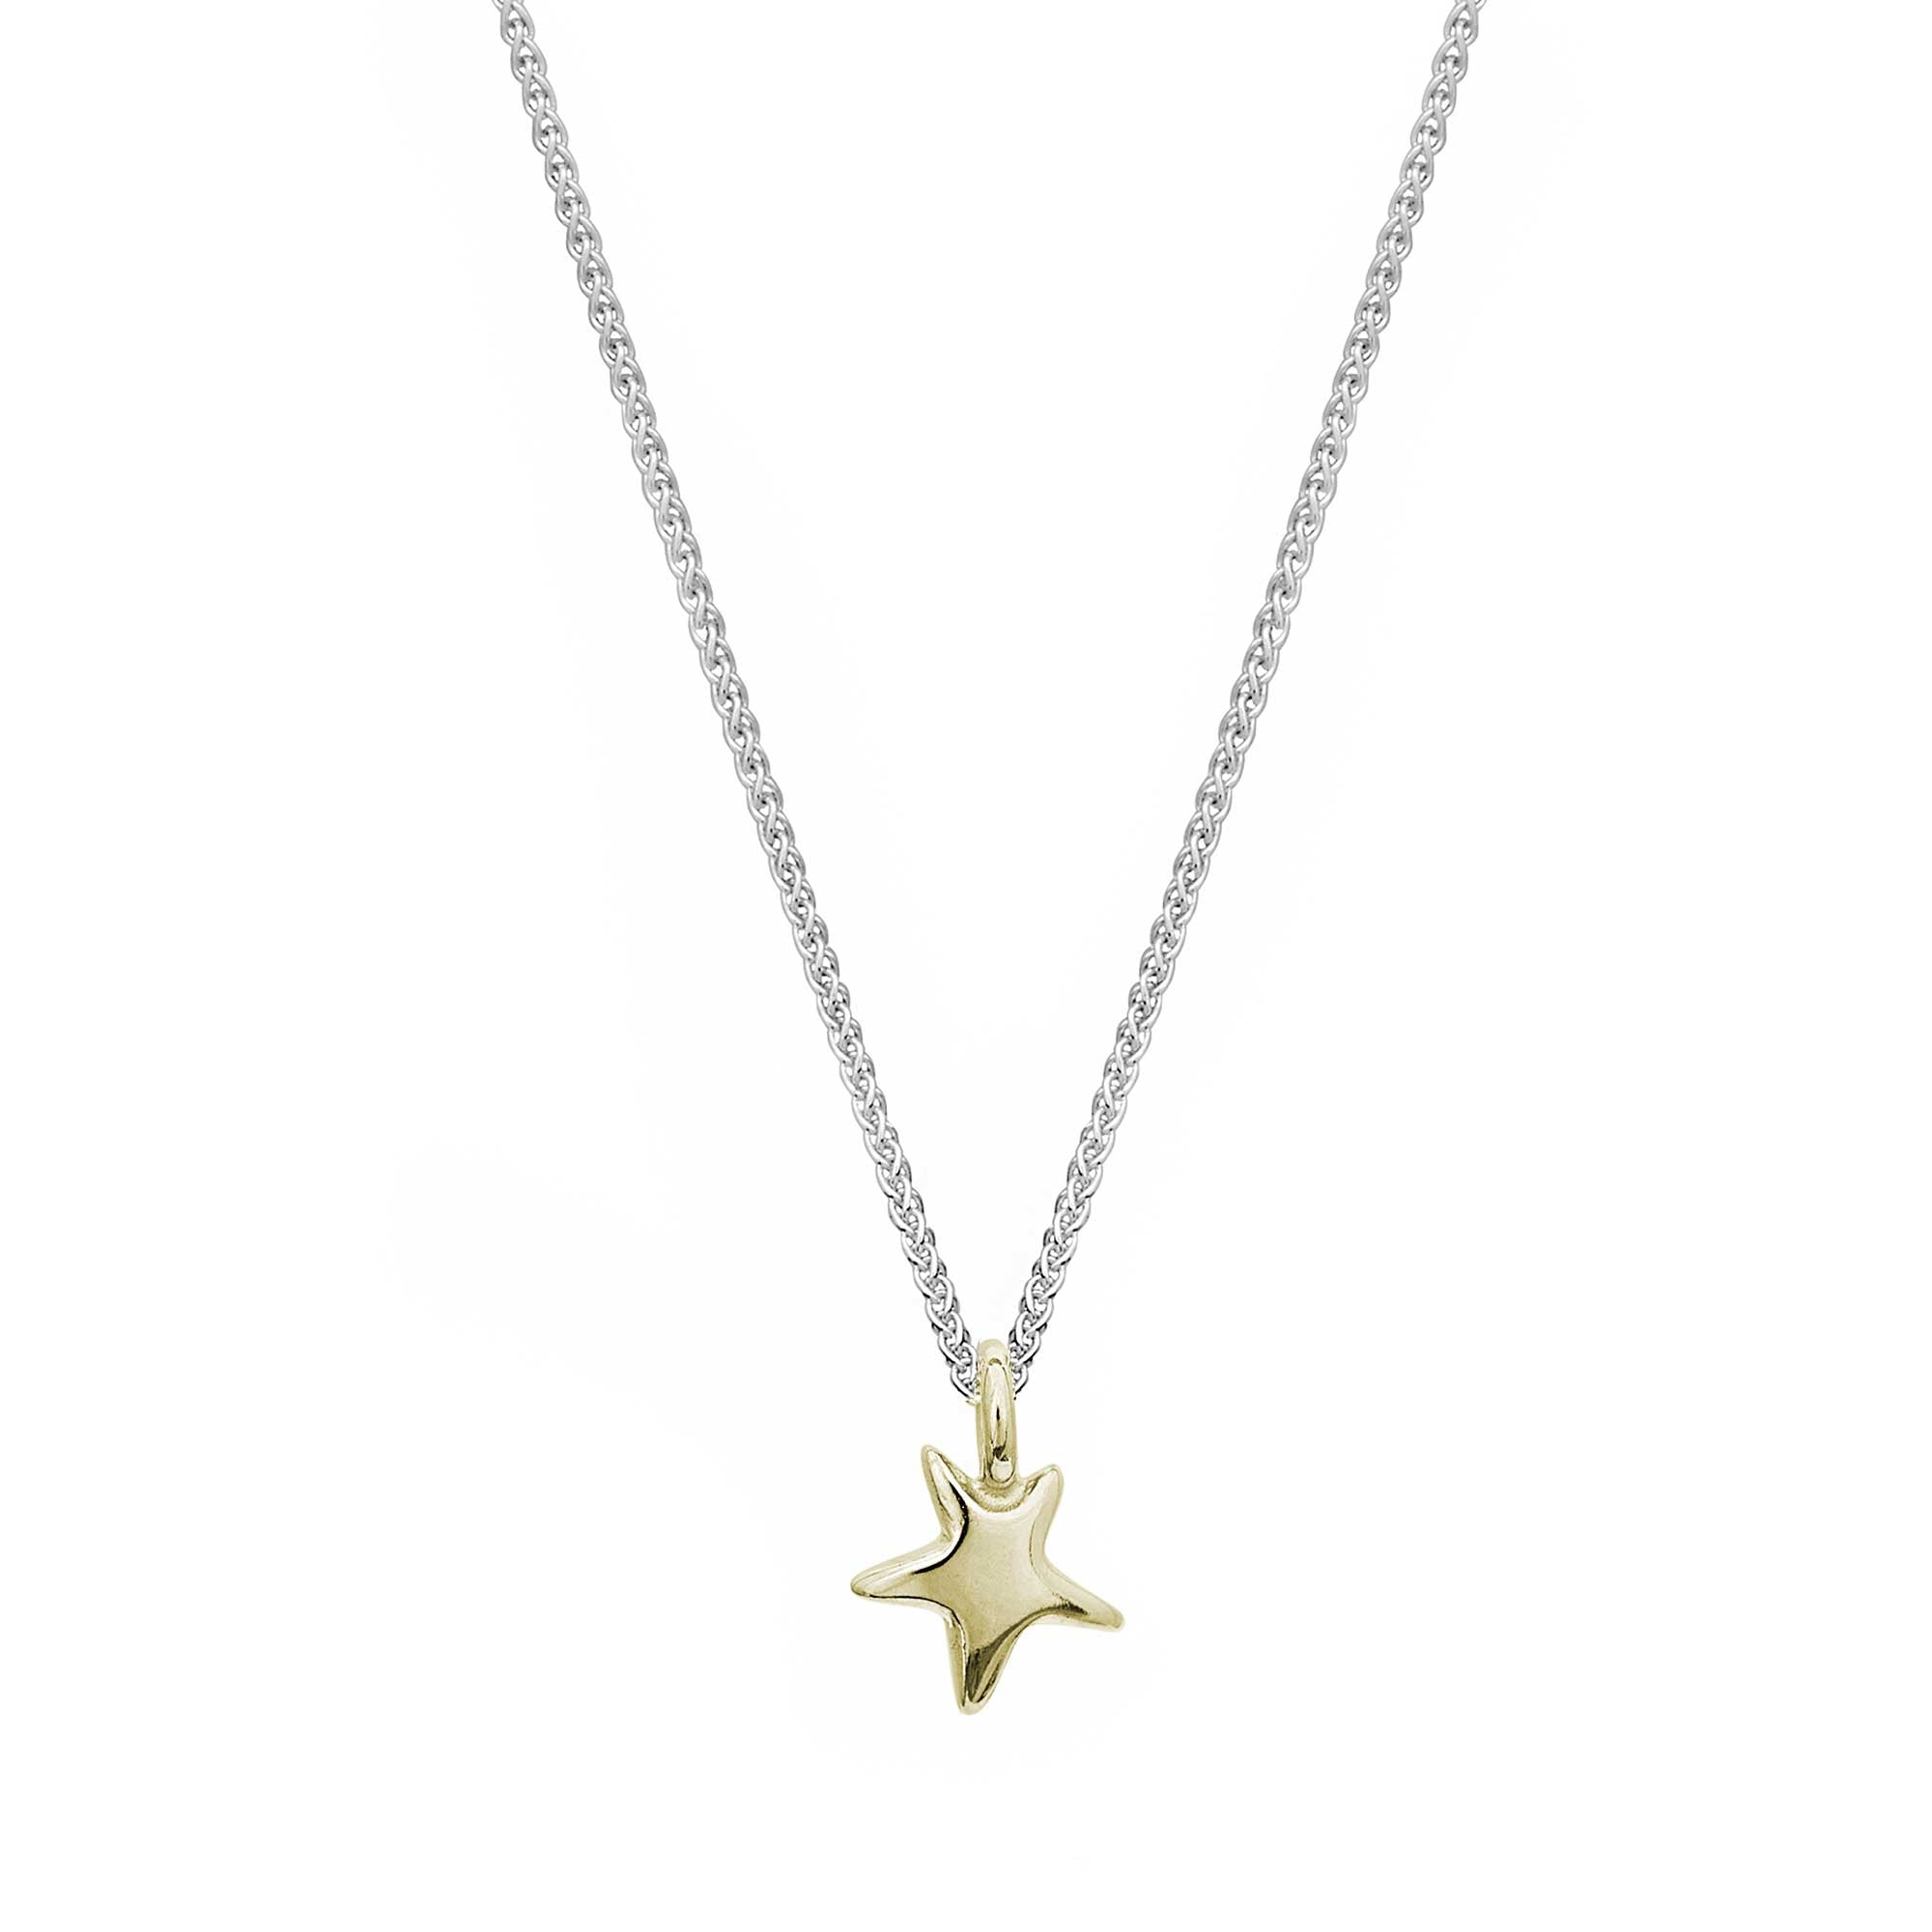 Delicate solid gold and silver star pendant for teens young womens gift designer Scarlett Jewellery